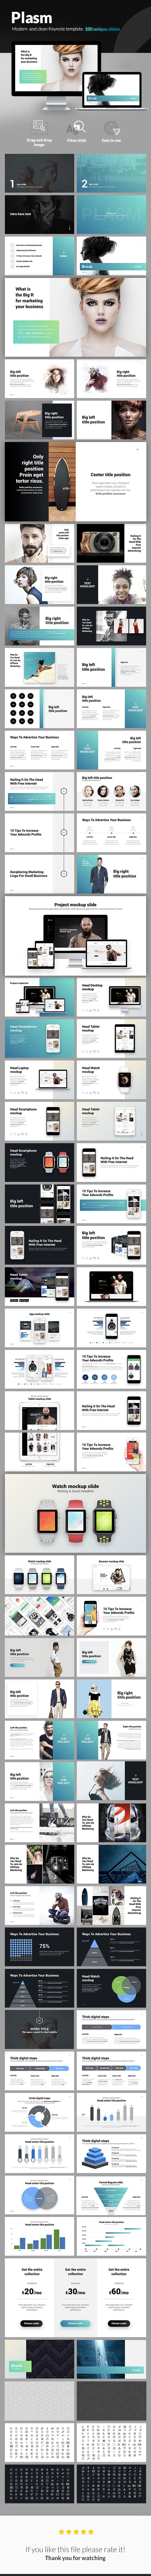 Plasm - Modern and clean keynote template - Creative #Keynote #Templates Download here: https://graphicriver.net/item/plasm-modern-and-clean-keynote-template/19429469?ref=alena994